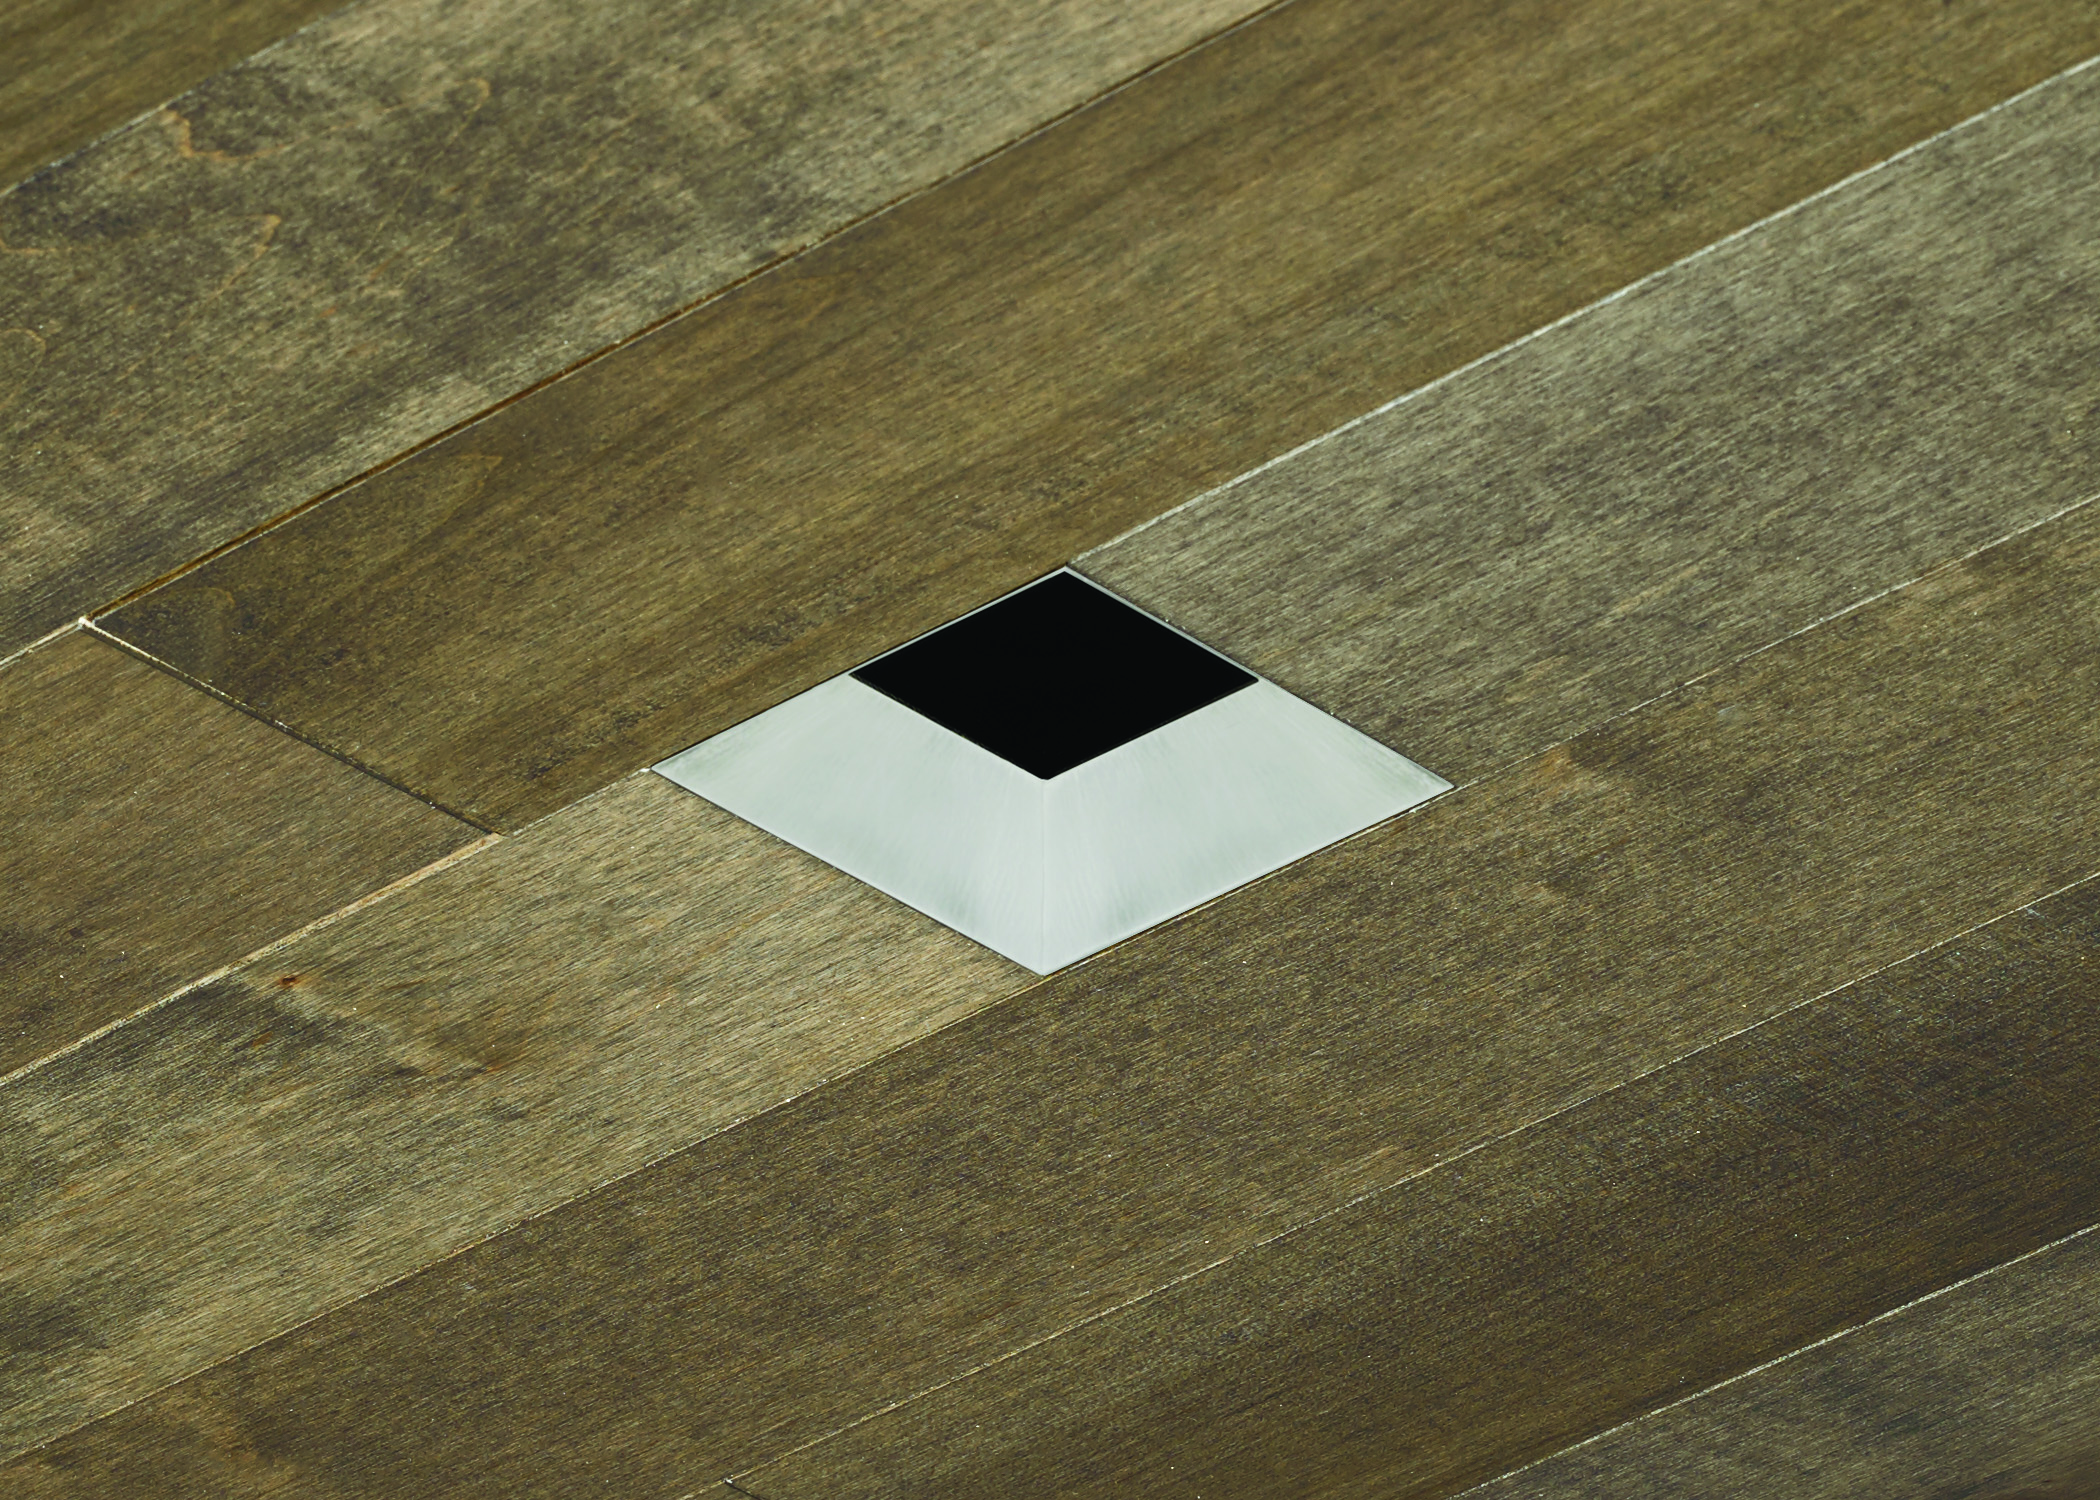 tech lighting has introduced element 3 recessed downlights for wood